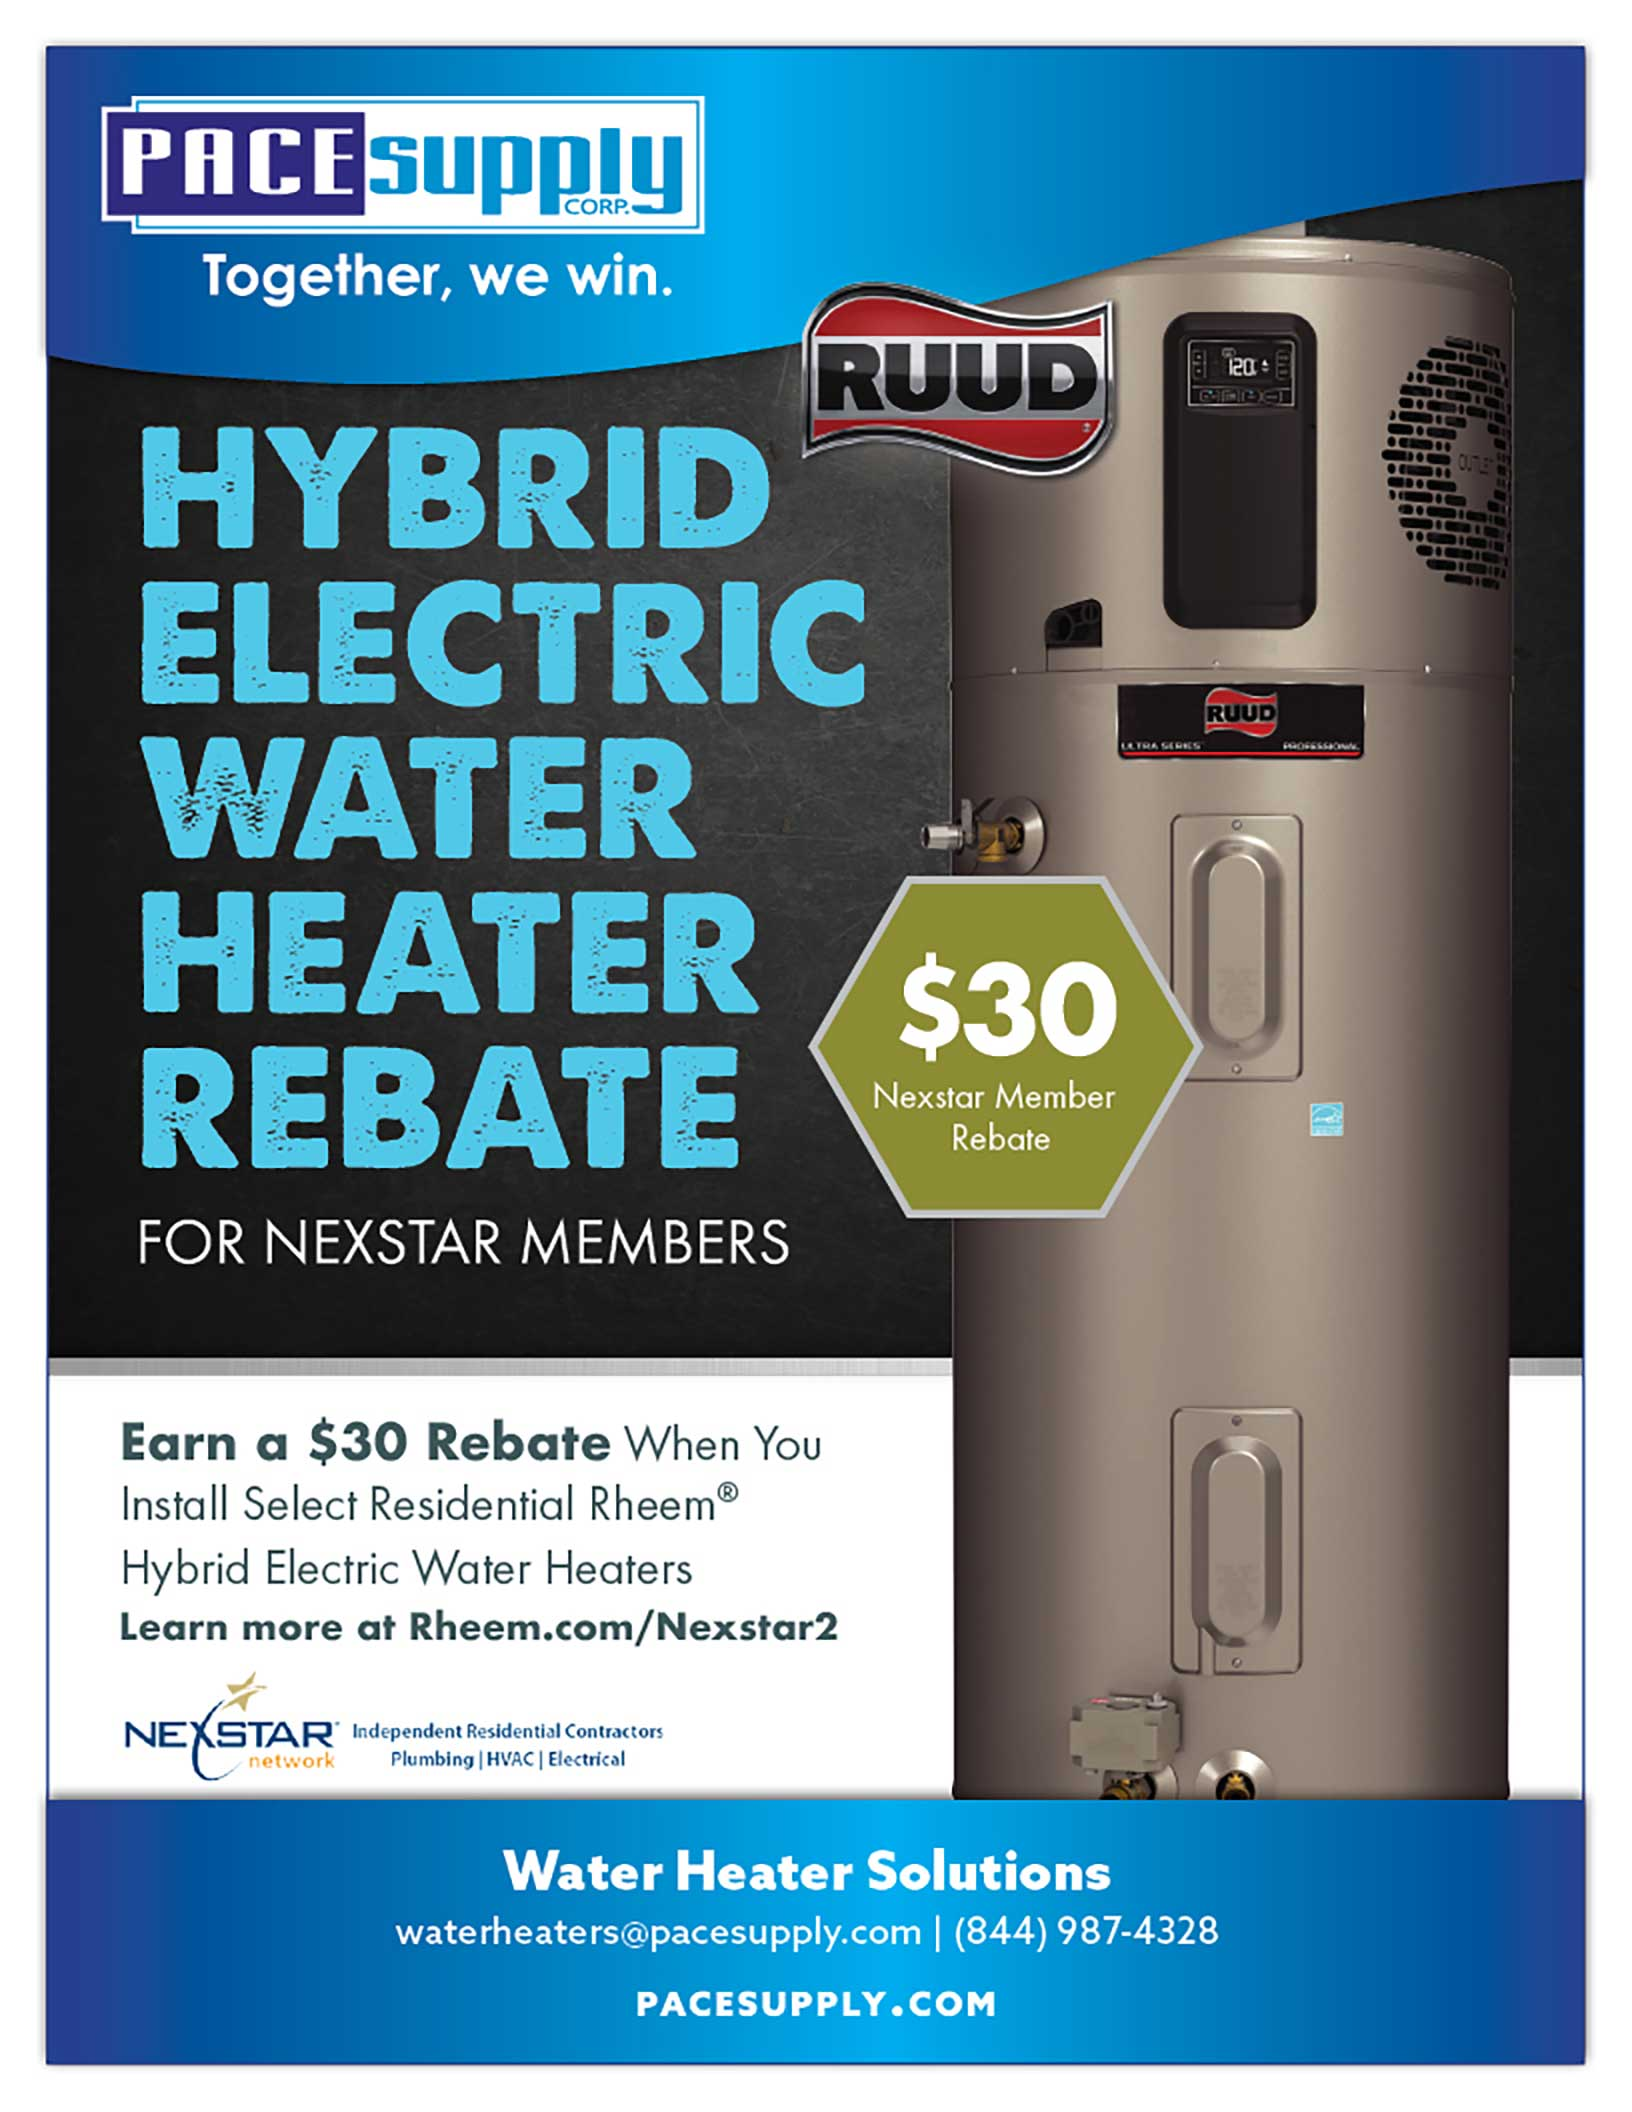 RUUD Hybrid Electric Water Heater Rebate